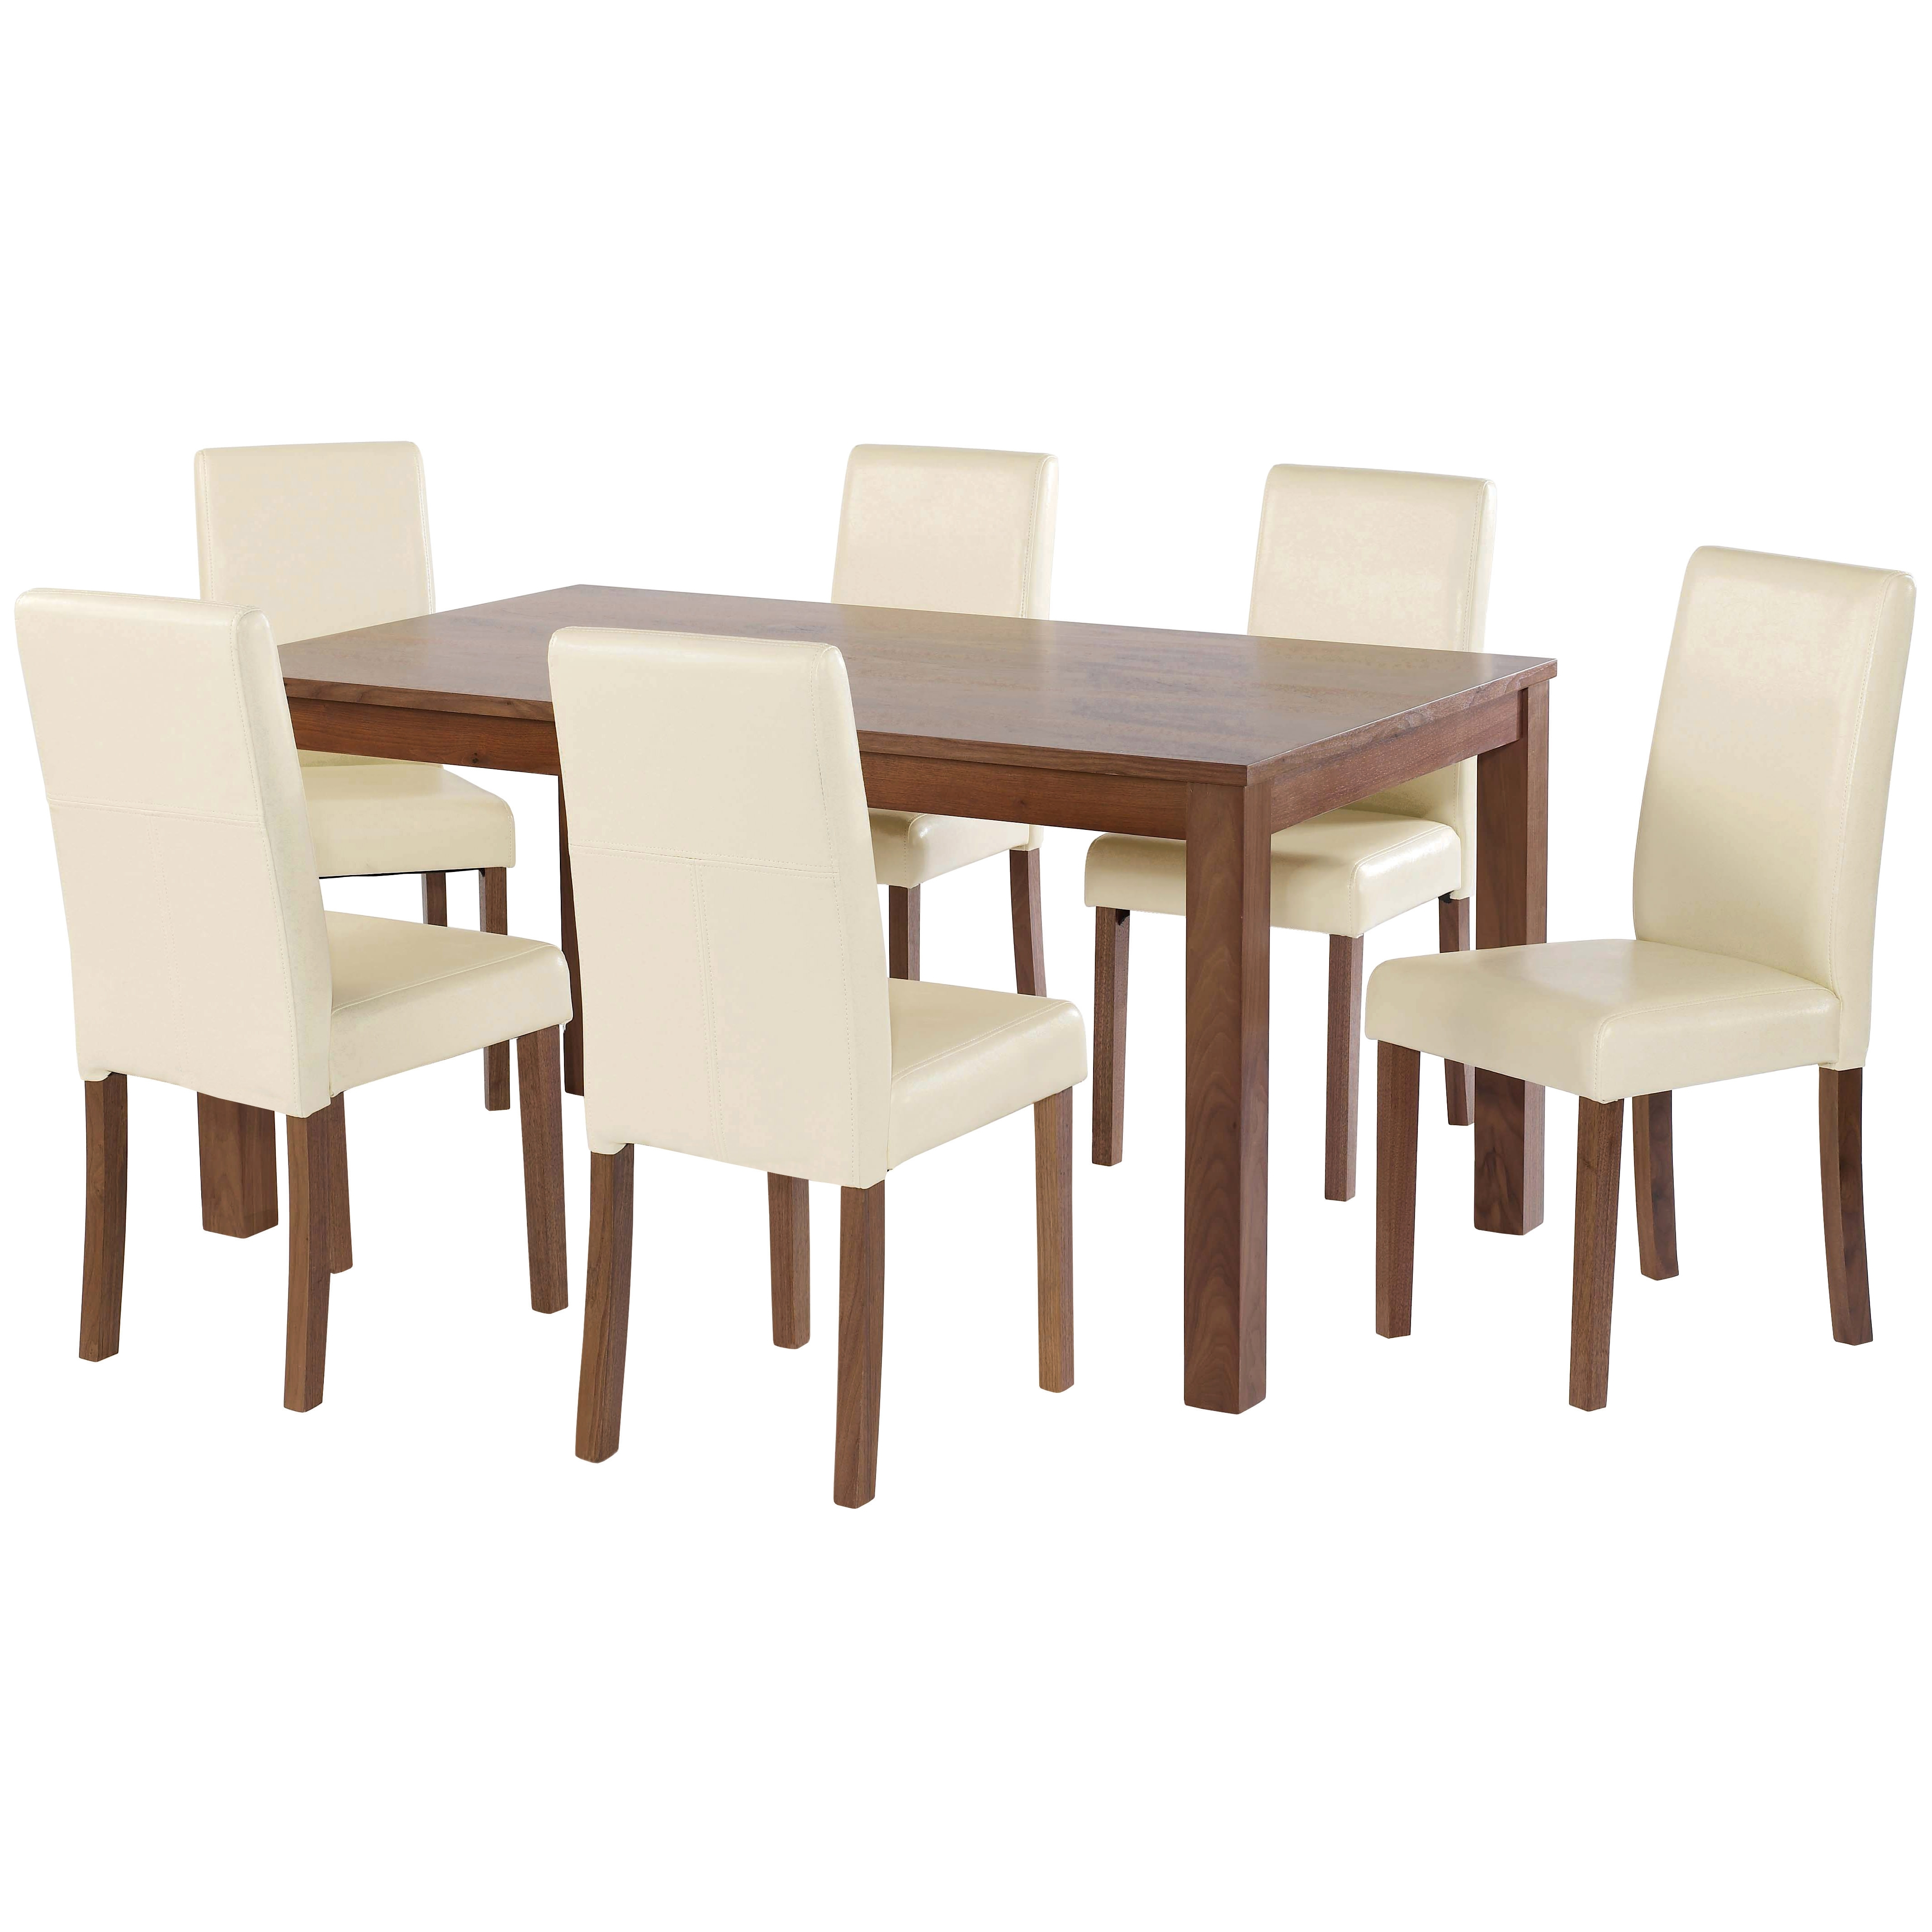 American Walnut Dining Table And Chair Set With 4/6 Seat (View 2 of 25)